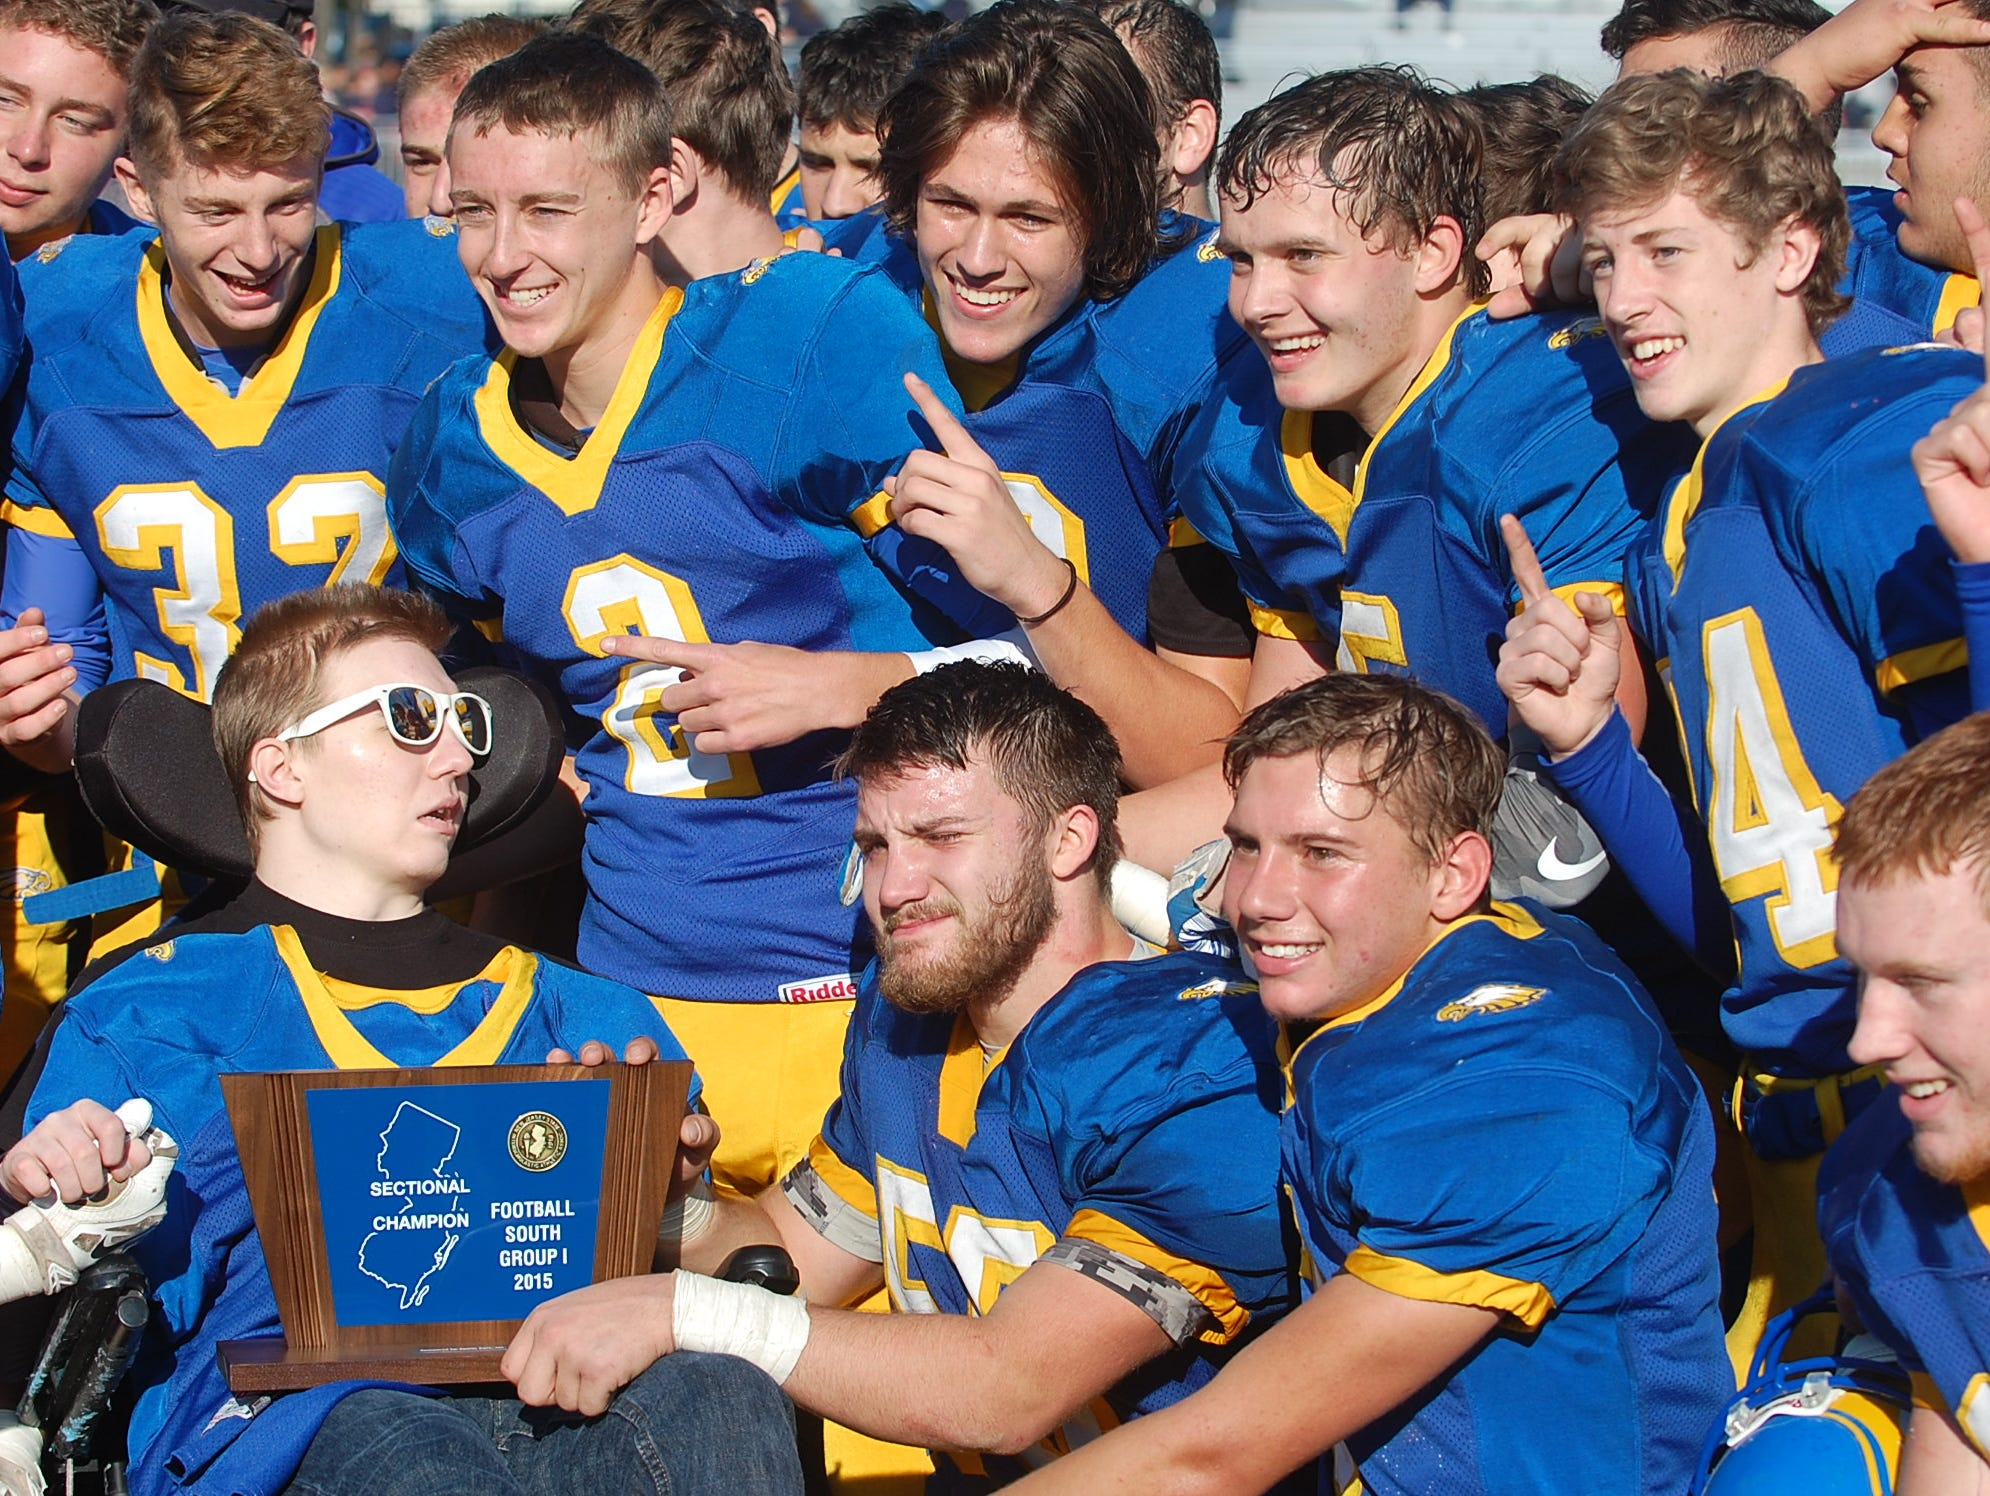 With teammate Kyle Pszenny front and center, Pennsville celebrates winning the South Jersey Group 1 title.